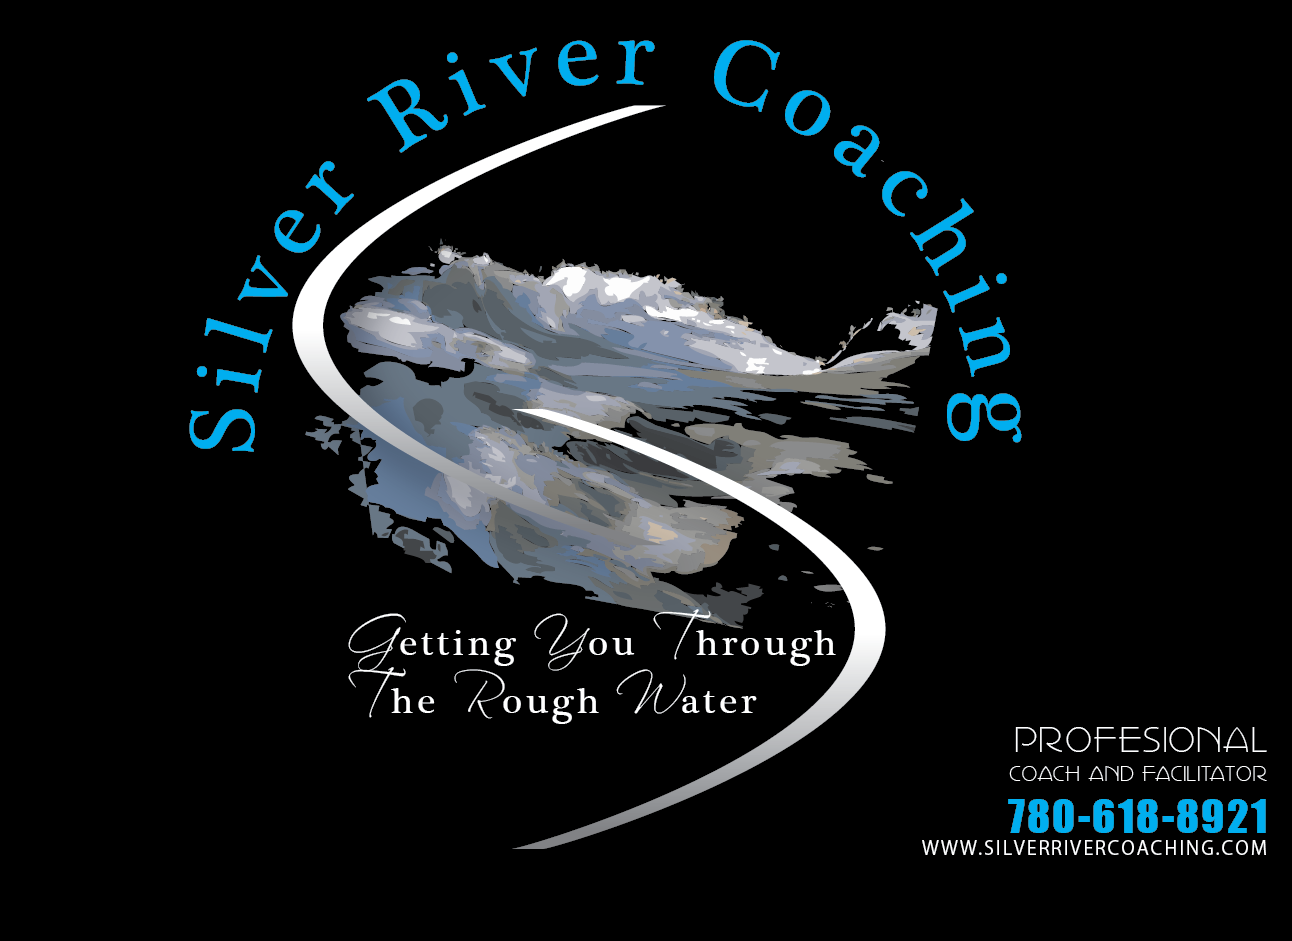 Logo Design by Md Iftekharul Islam Pavel - Entry No. 19 in the Logo Design Contest Logo Design Needed for Exciting New Company Silver River Coaching.